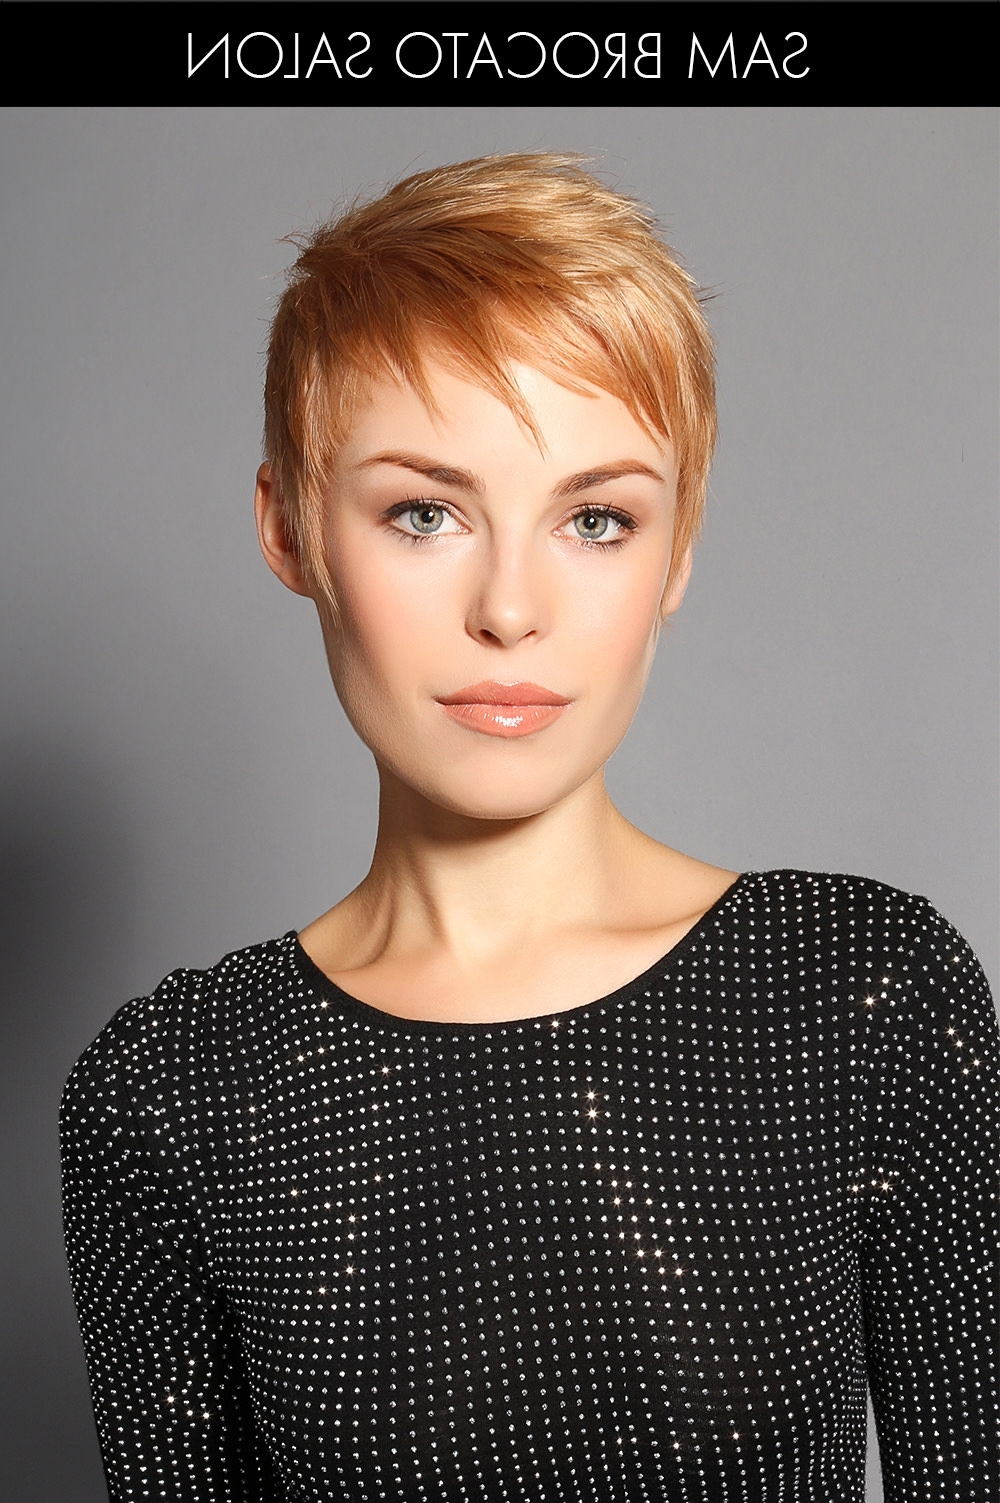 30 New And Exciting Hair Colors For Winter   Hair Color Love Pertaining To Recent Modified Pixie Hairstyles (View 13 of 15)